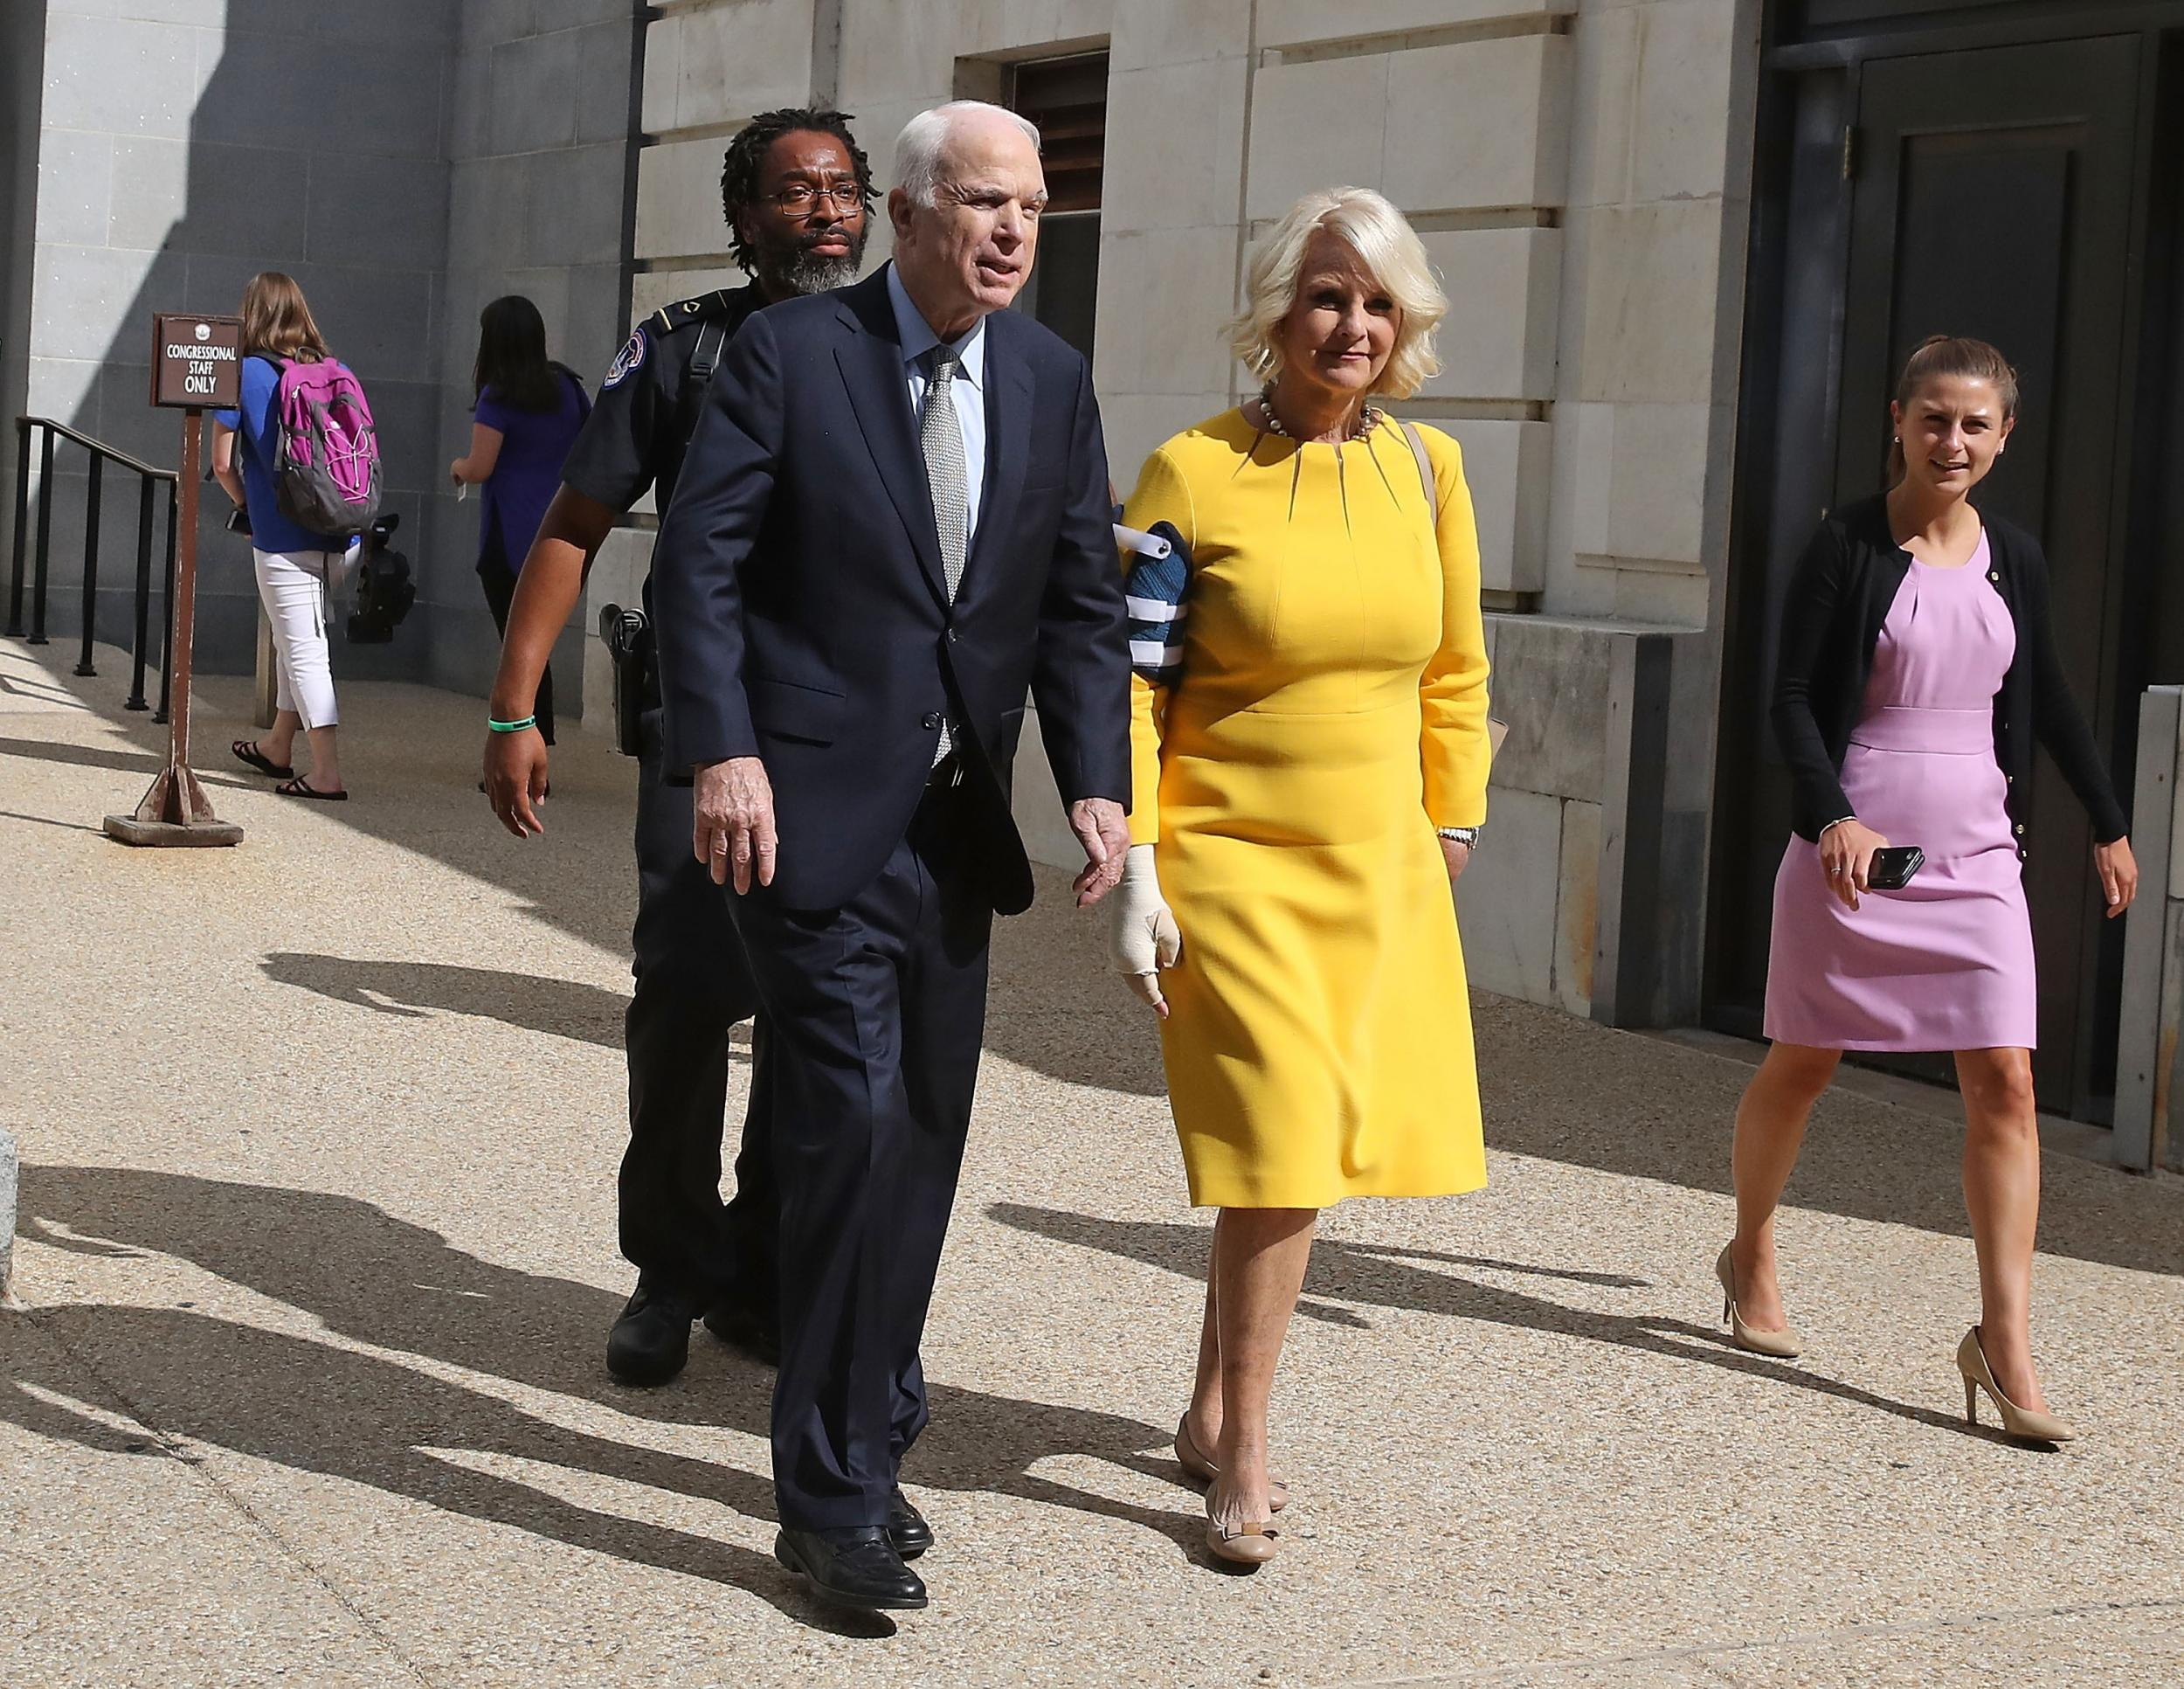 John McCain's wife hits out at White House staffer who mocked her ailing husband